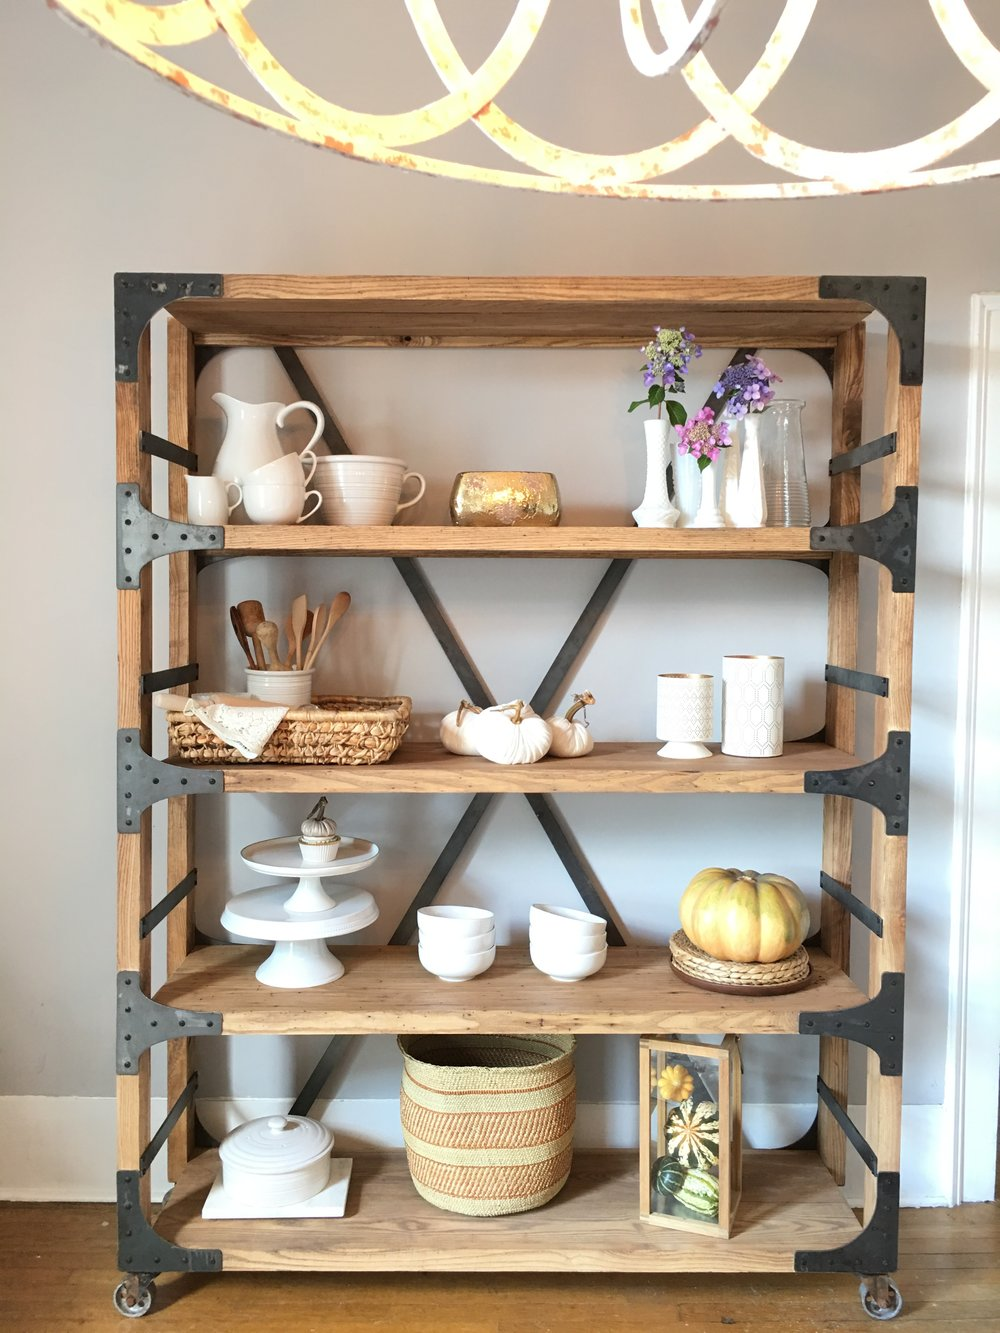 Our gorgeous shelves are made to order for now! They can be customized in size to fit your needs. It is super durable and the quality is honestly out of the world.      I hope you are following @whiteshantydesign too and watching it all unfold very soon. It's such an honor to work them and I can't wait to help you turn your house into a home with our beautiful furniture line.     Ps get ready for birthday pics this week and bring on Harper's bday party Saturday!! Love y'all! Thanks for stopping by and for all your love and support!! Harper and I appreciate it so much!   XOXO,  Sarah